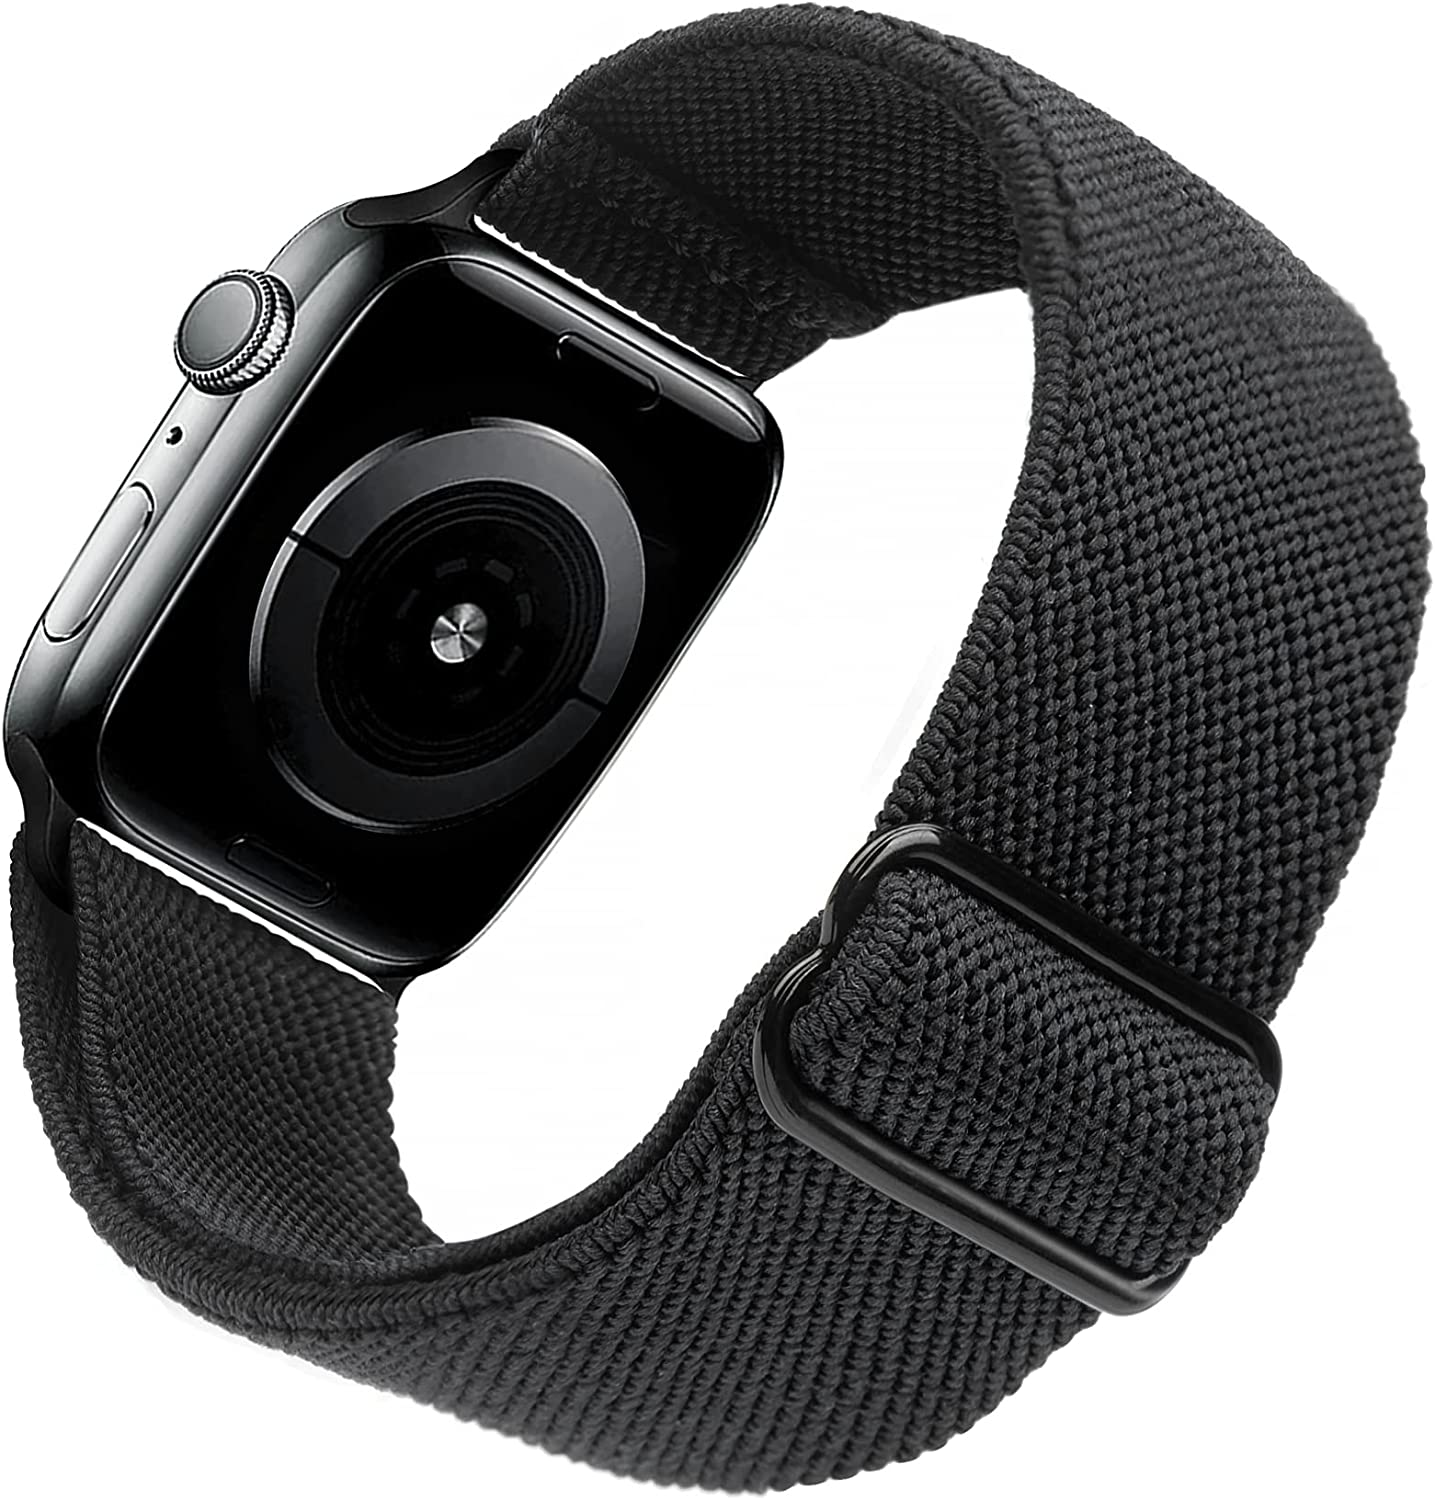 Arae Stretchy Nylon Watch Band Compatible with Apple Watch Band 44mm 42mm Adjustable Elastic Sport Band for iWatch Series 6 5 4 SE 3 2 1 Women Men - Black, 42/44mm